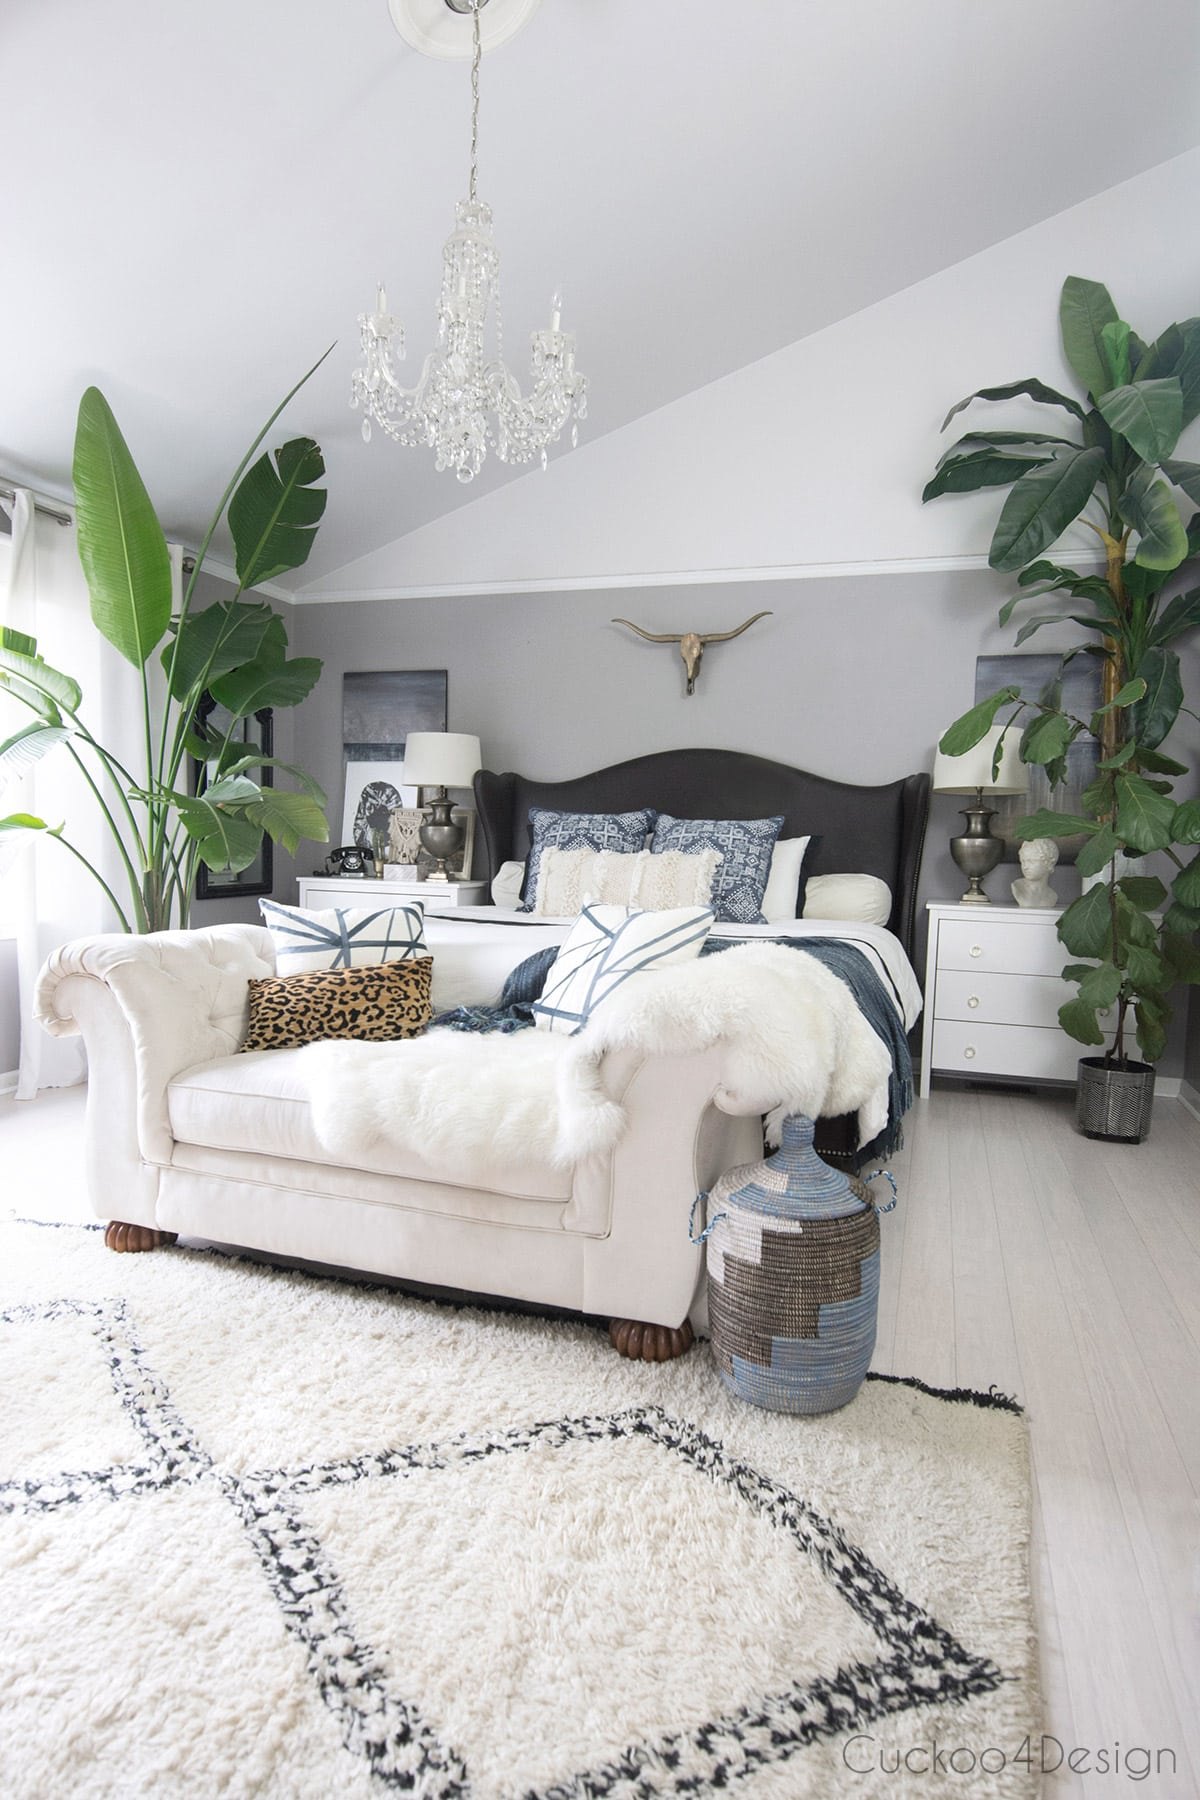 Tips for Decorating your Bedroom on a Budget | Cuckoo4Design on Bohemian Bedroom Ideas On A Budget  id=57919